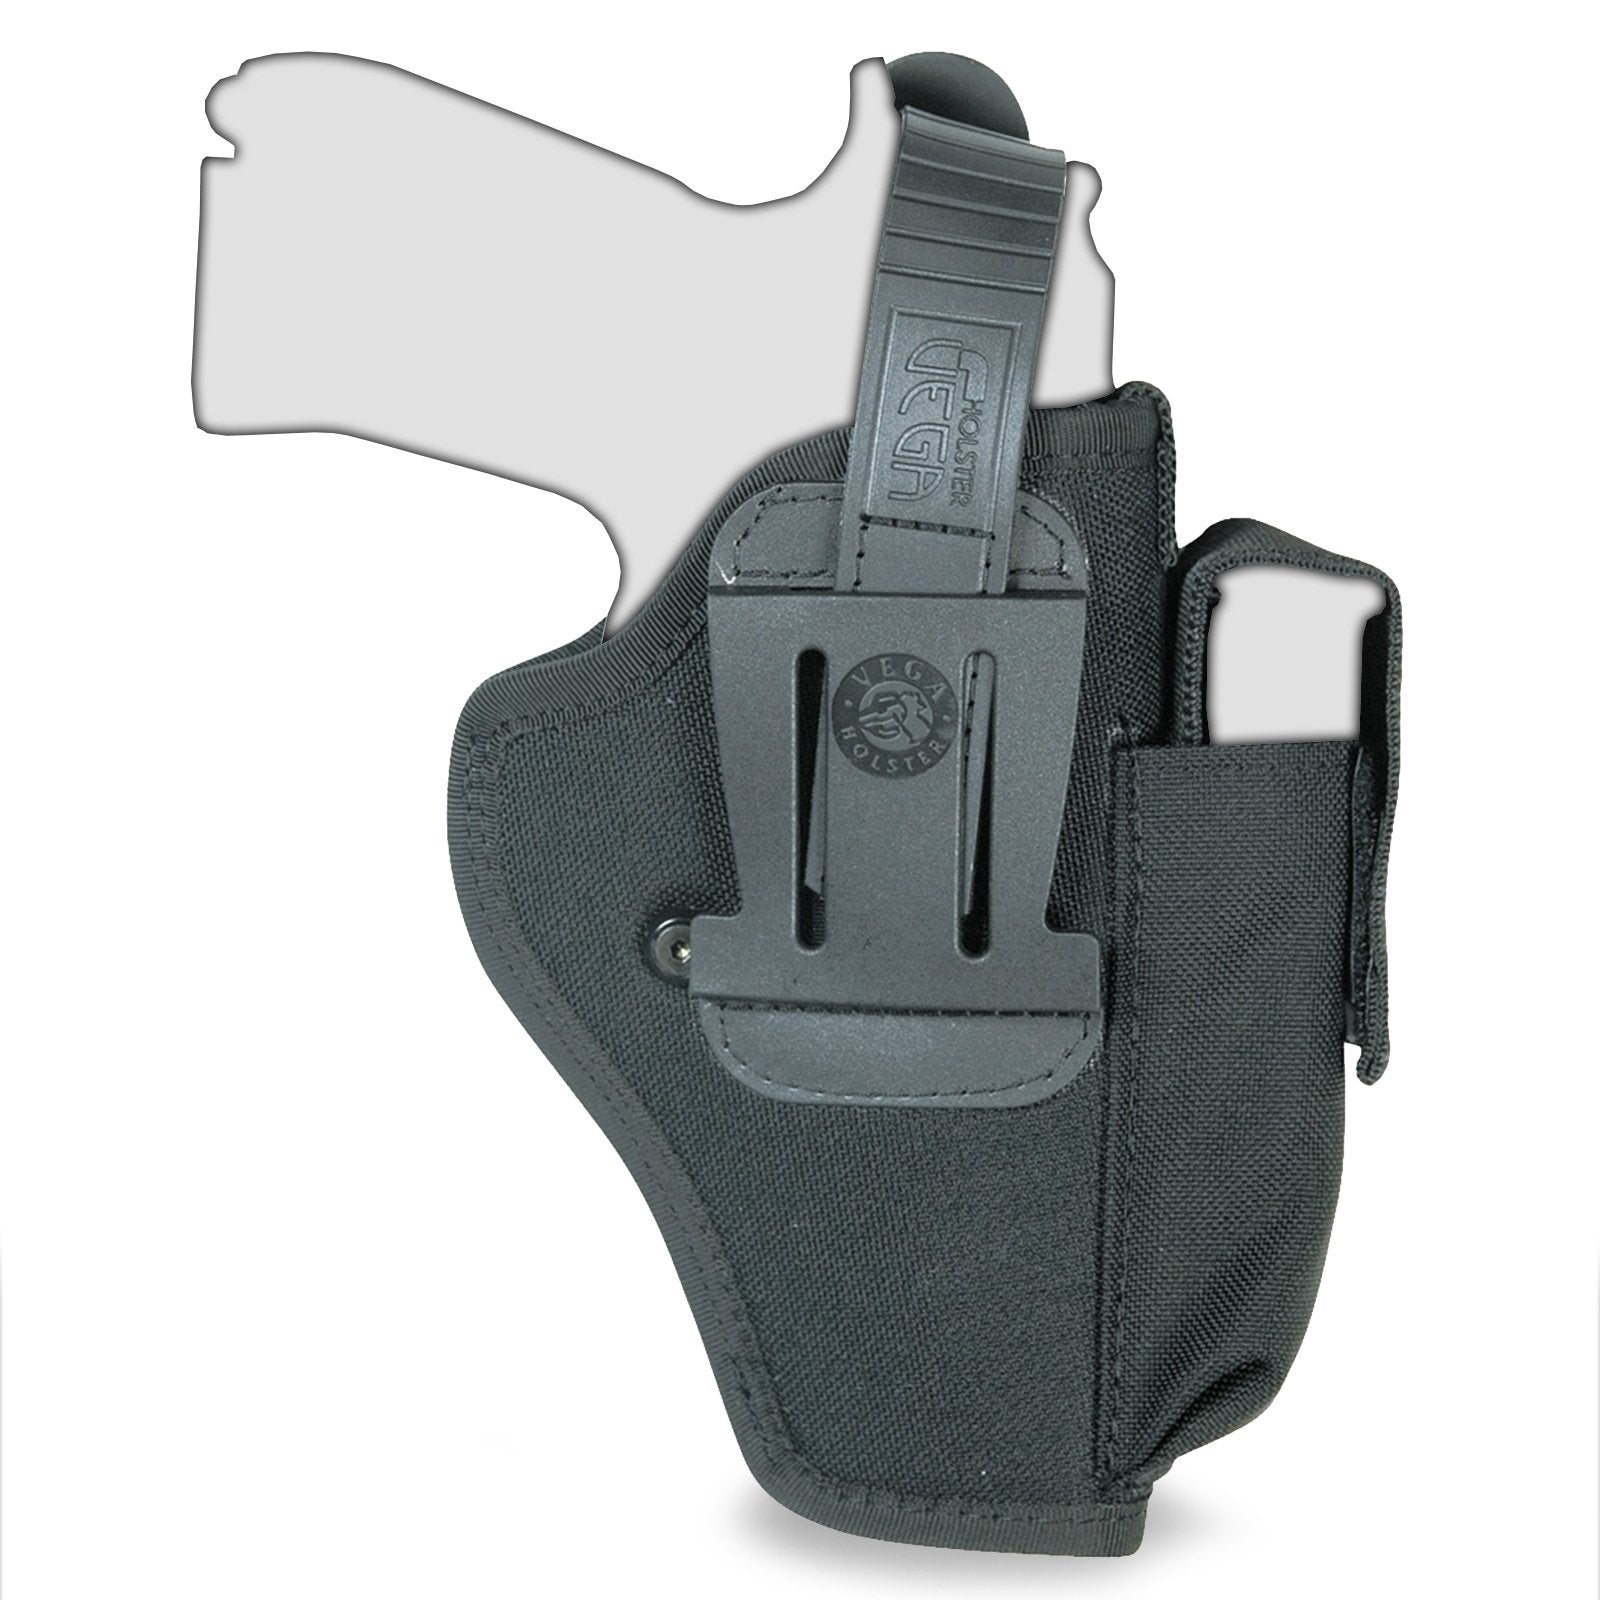 Vega TM2 Ambidextrous Belt Holster w/ Mag Pouch | UKMCPro